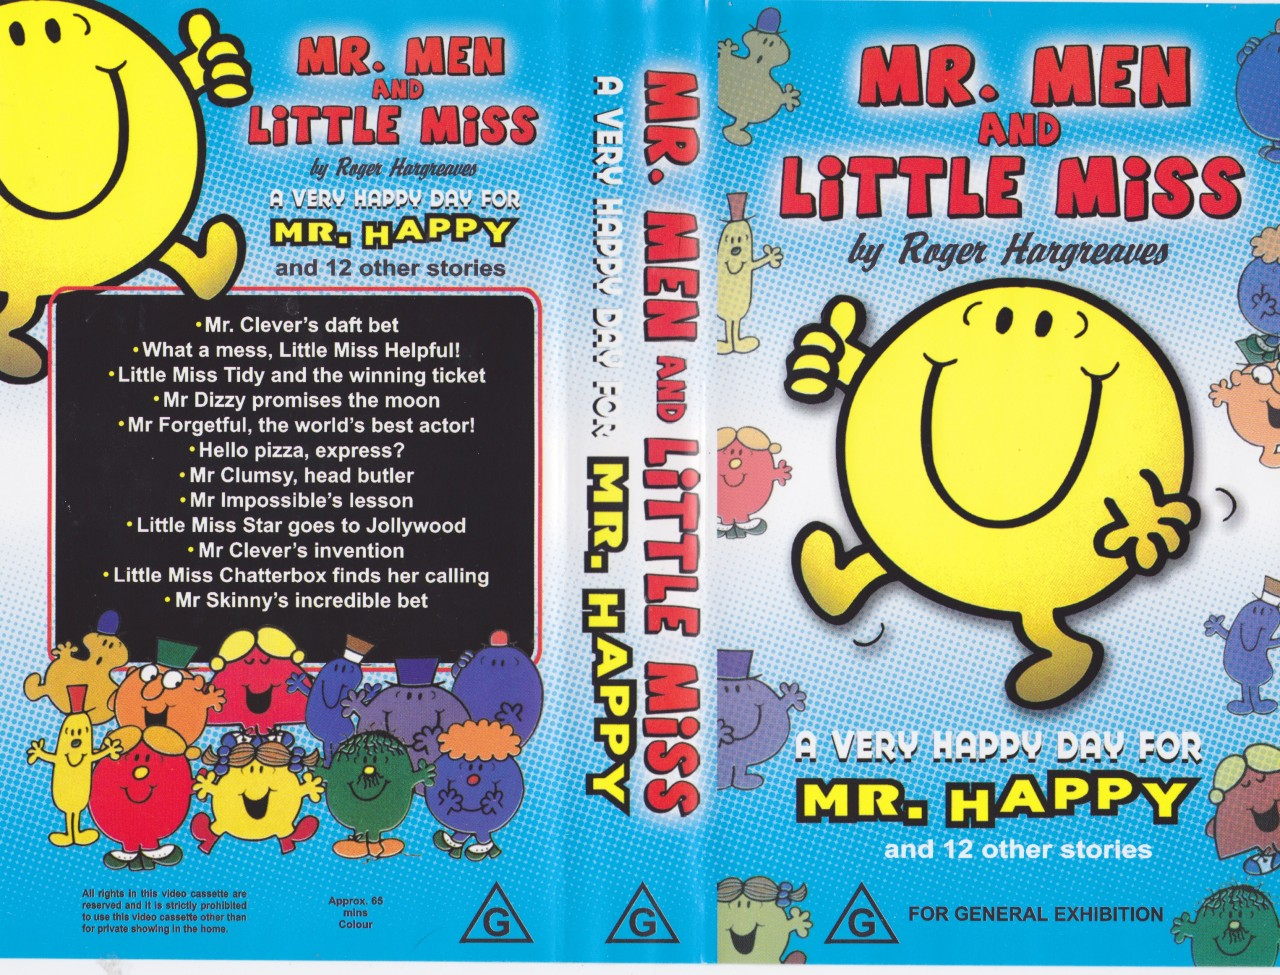 A Very Happy Day For Mr. Happy (VHS)Fan Feed